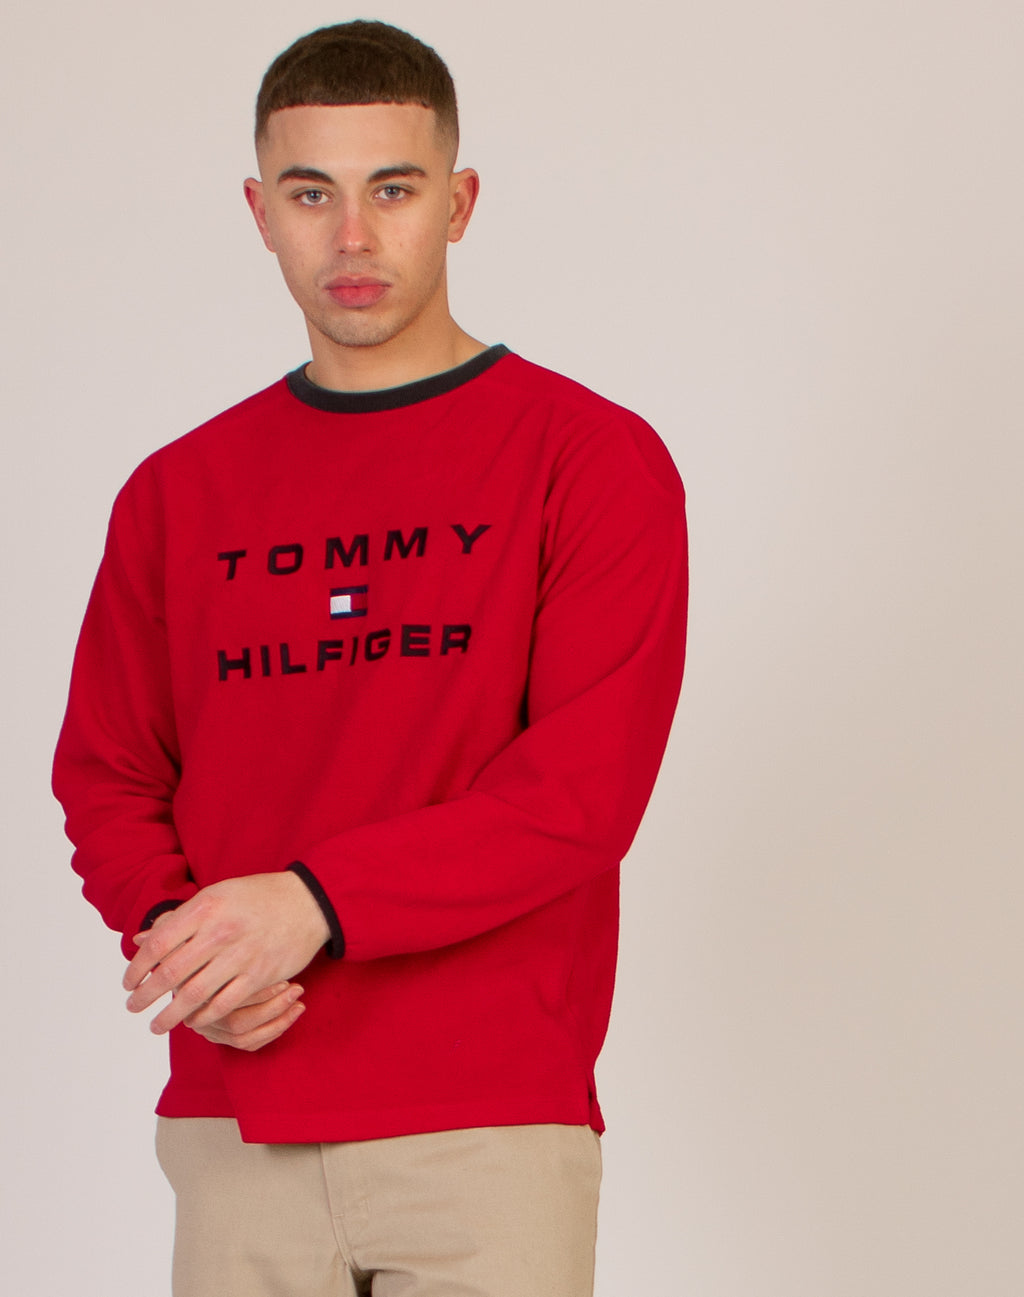 TOMMY HILFIGER RED JUMPER